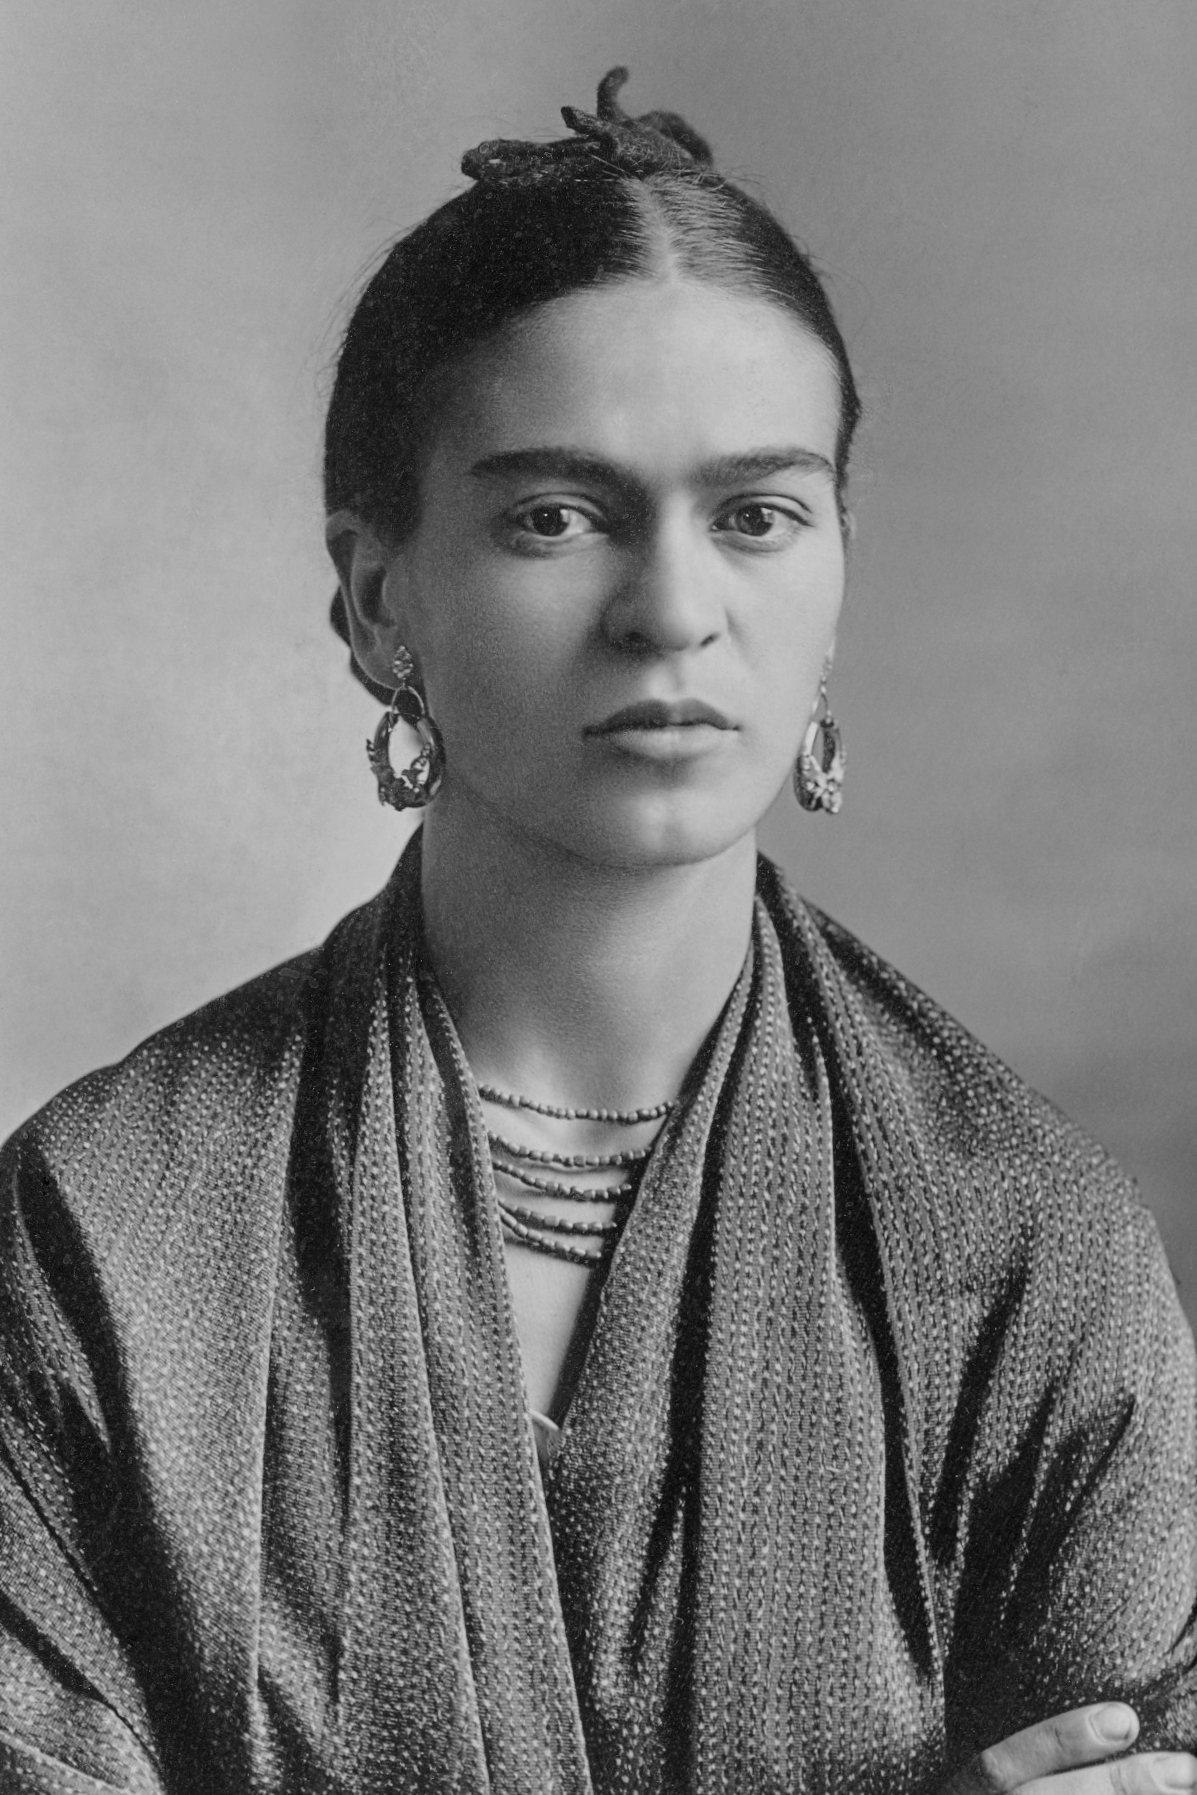 Frida_Kahlo,_by_Guillermo_Kahlo.jpg (1197×1795)